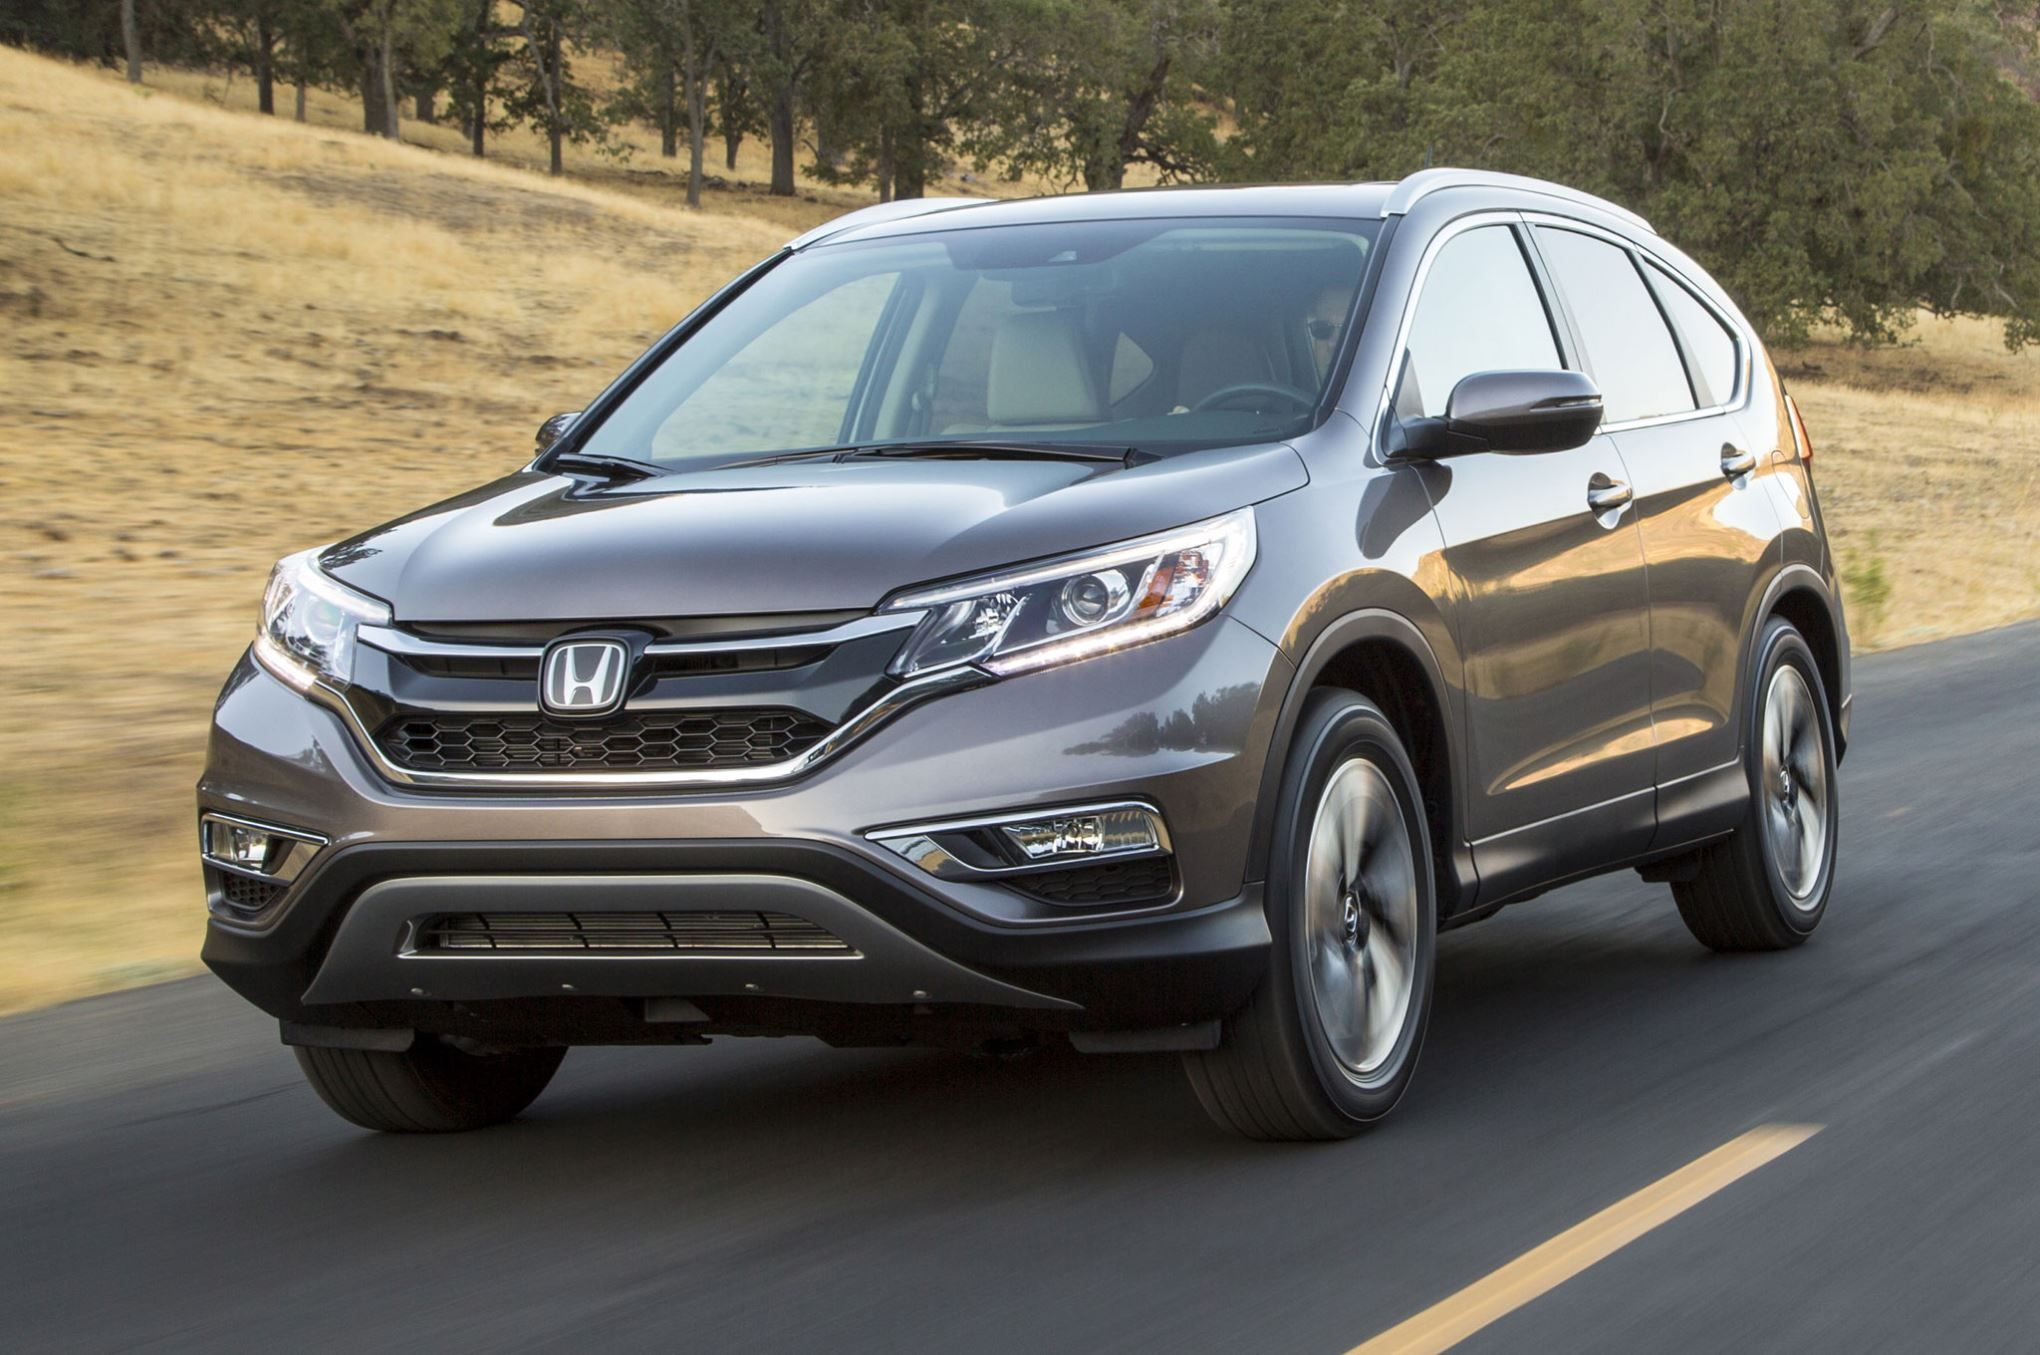 2015 Honda CRV leads the pack with new updates. Check it